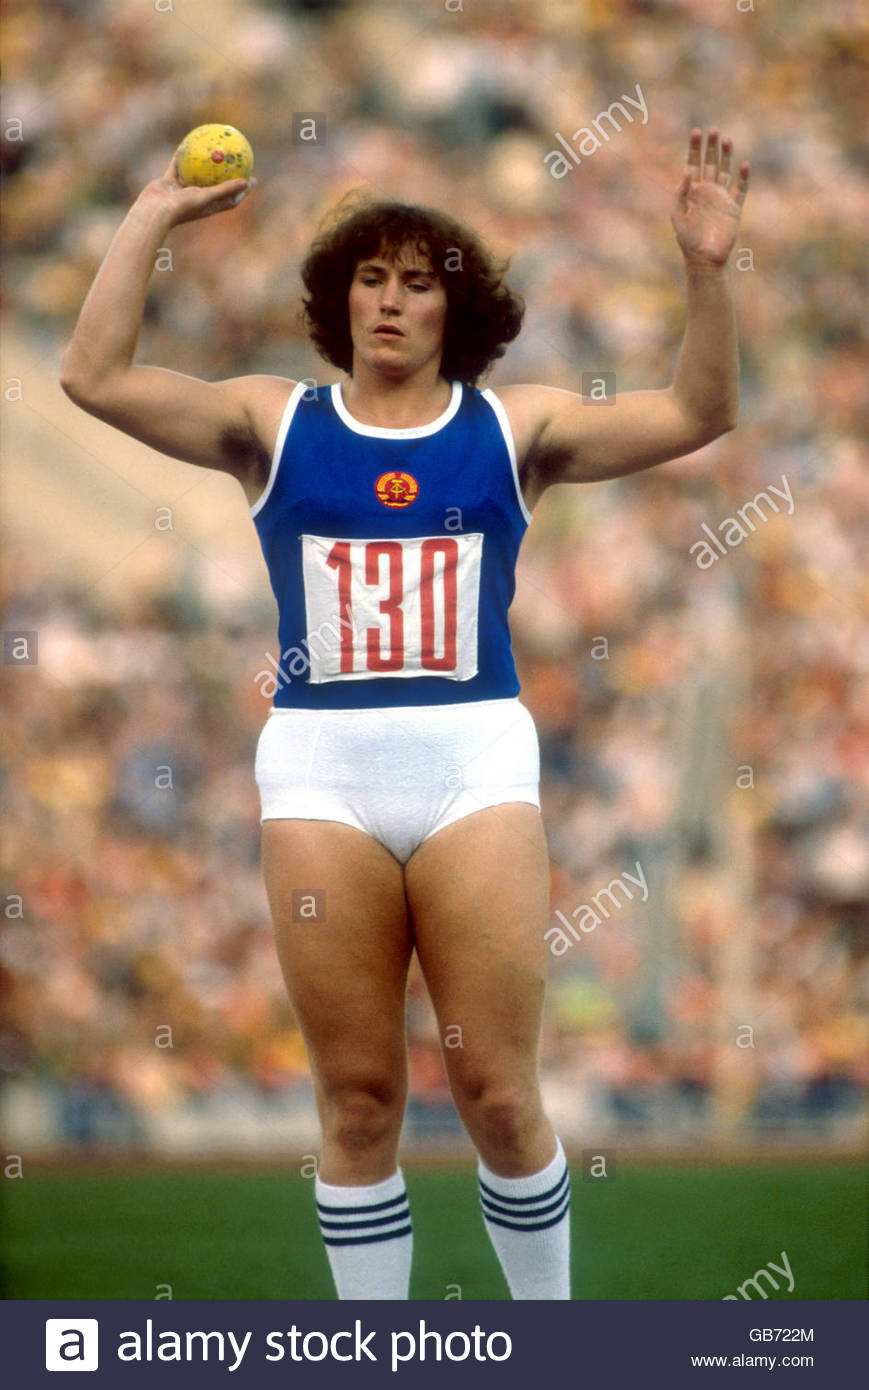 We gonna win women's Olympic running!!!-athletics-moscow-olympic-games-womens-shot-put-gb722m.jpg